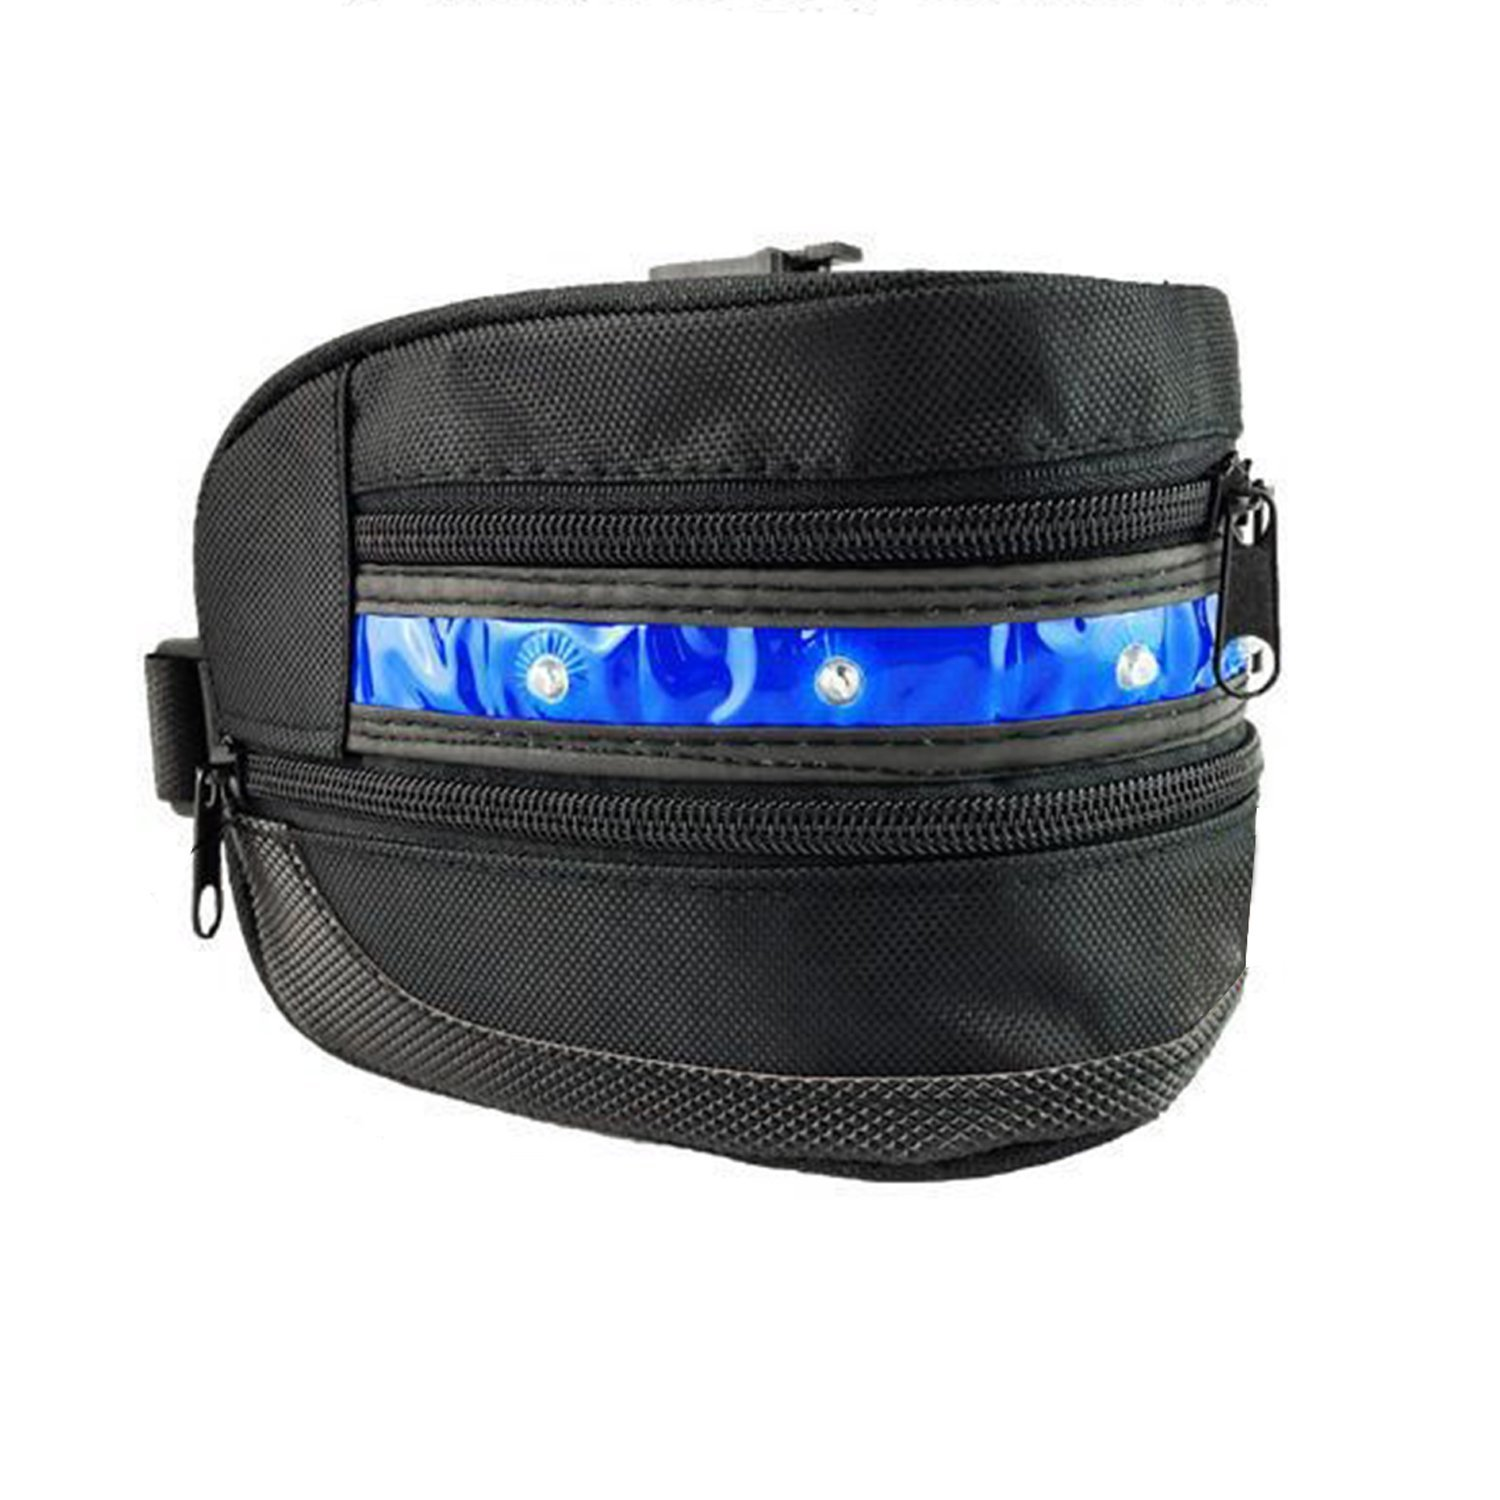 3 Modes LED Bike Saddle Bag/Bike Seat Bag/Seat Packs,ViMall(TM)Super Cool LED Waterproof Bicycle Cycling Bike Rear Seat Bag/Tail Bag/Under-seat Storage for Outdoor Race,Mountain Road Riding